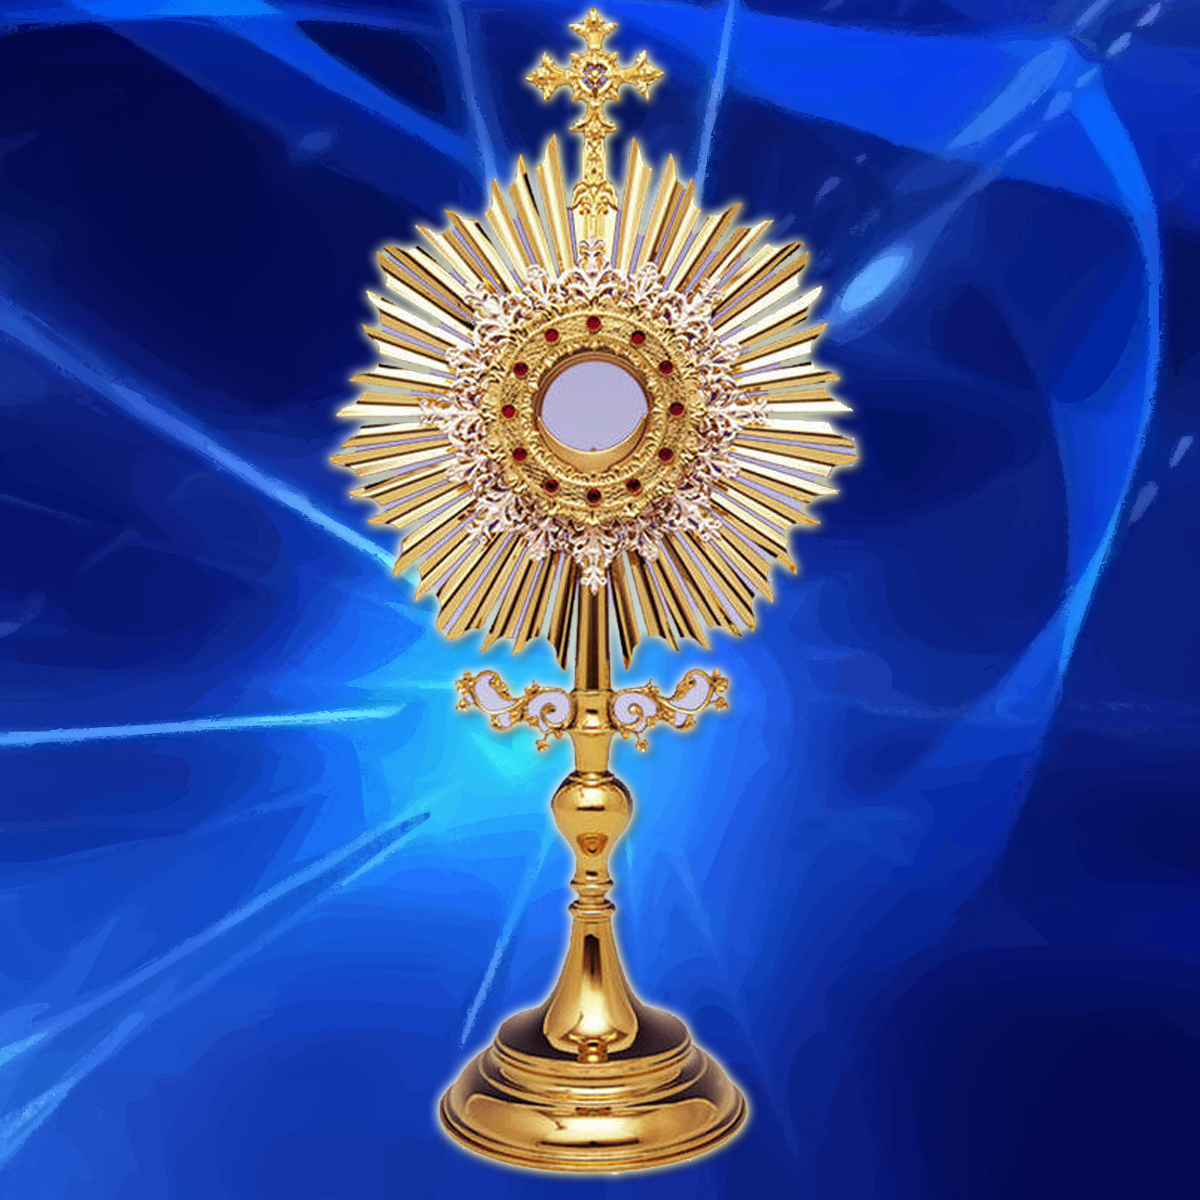 Monstrance Clipart Clipground